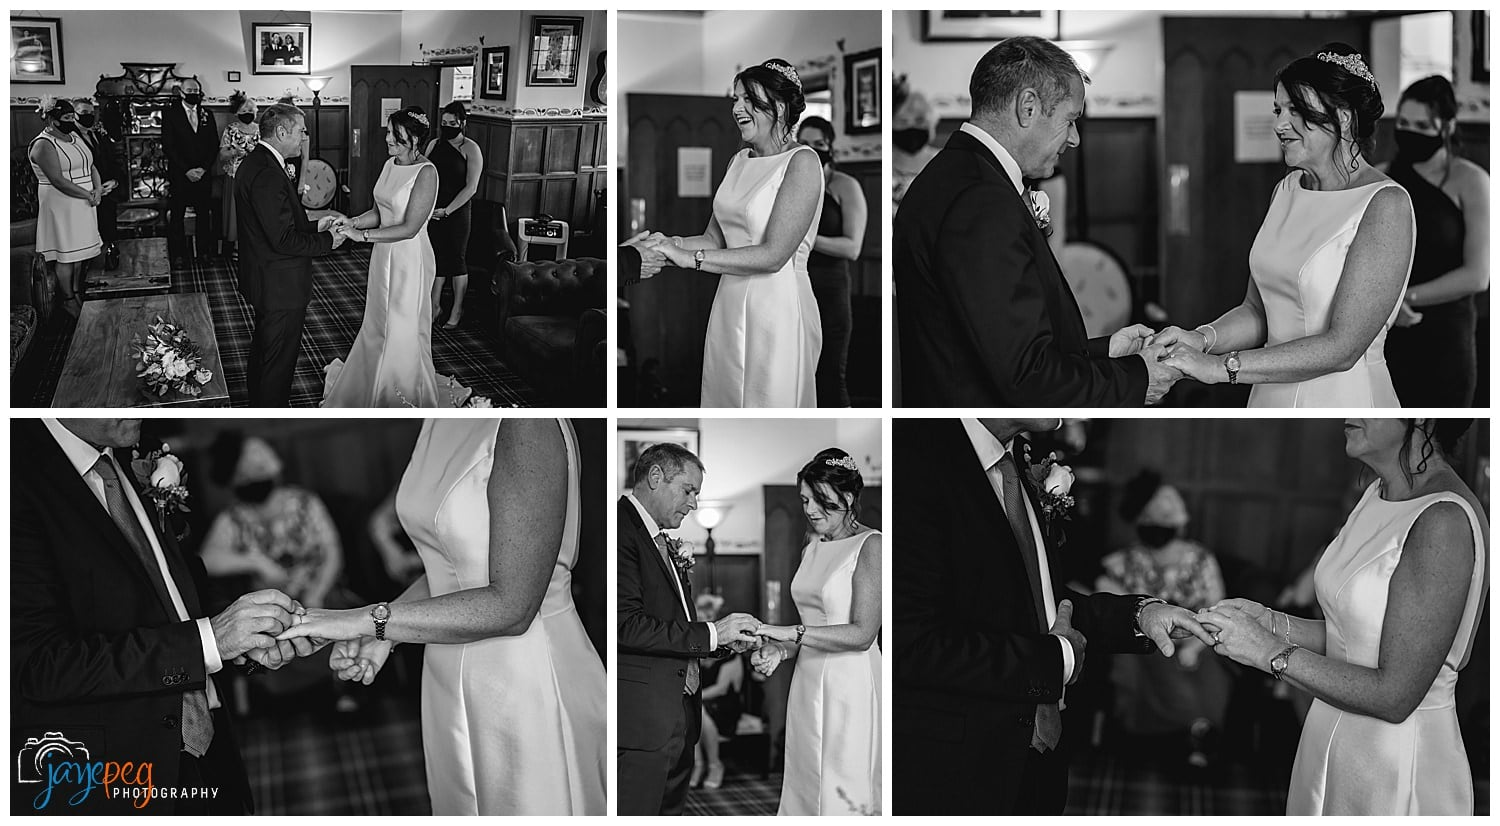 a bride and groom exchange vows during a wedding ceremony in the music room at broadoaks country house hotel